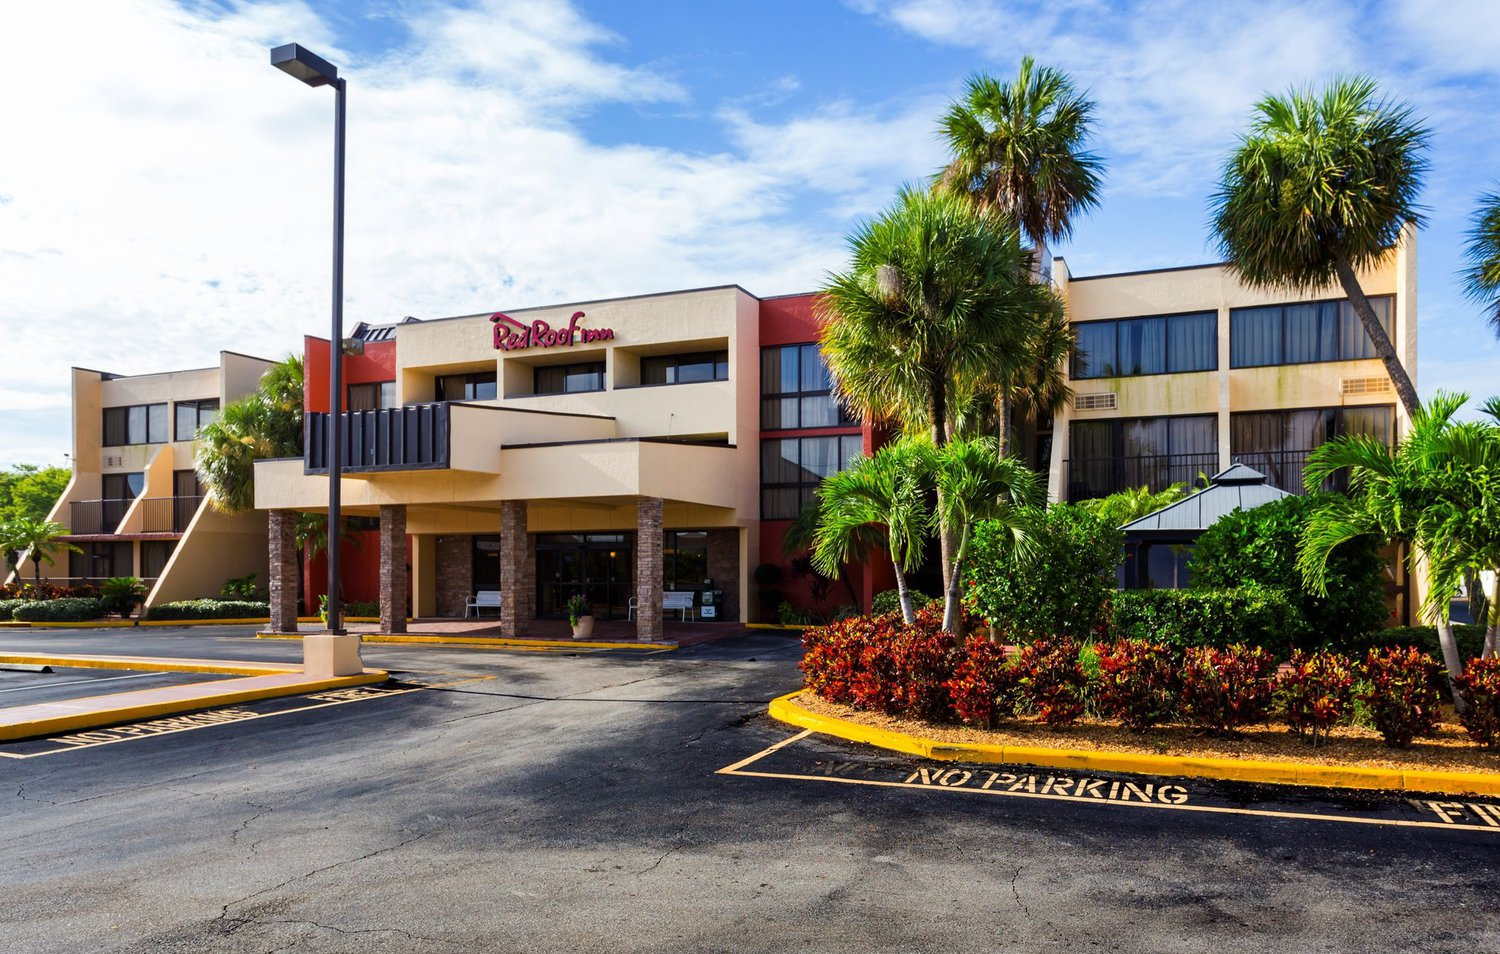 Red Roof Inn Clearwater Airport Clearwater Fl Jobs